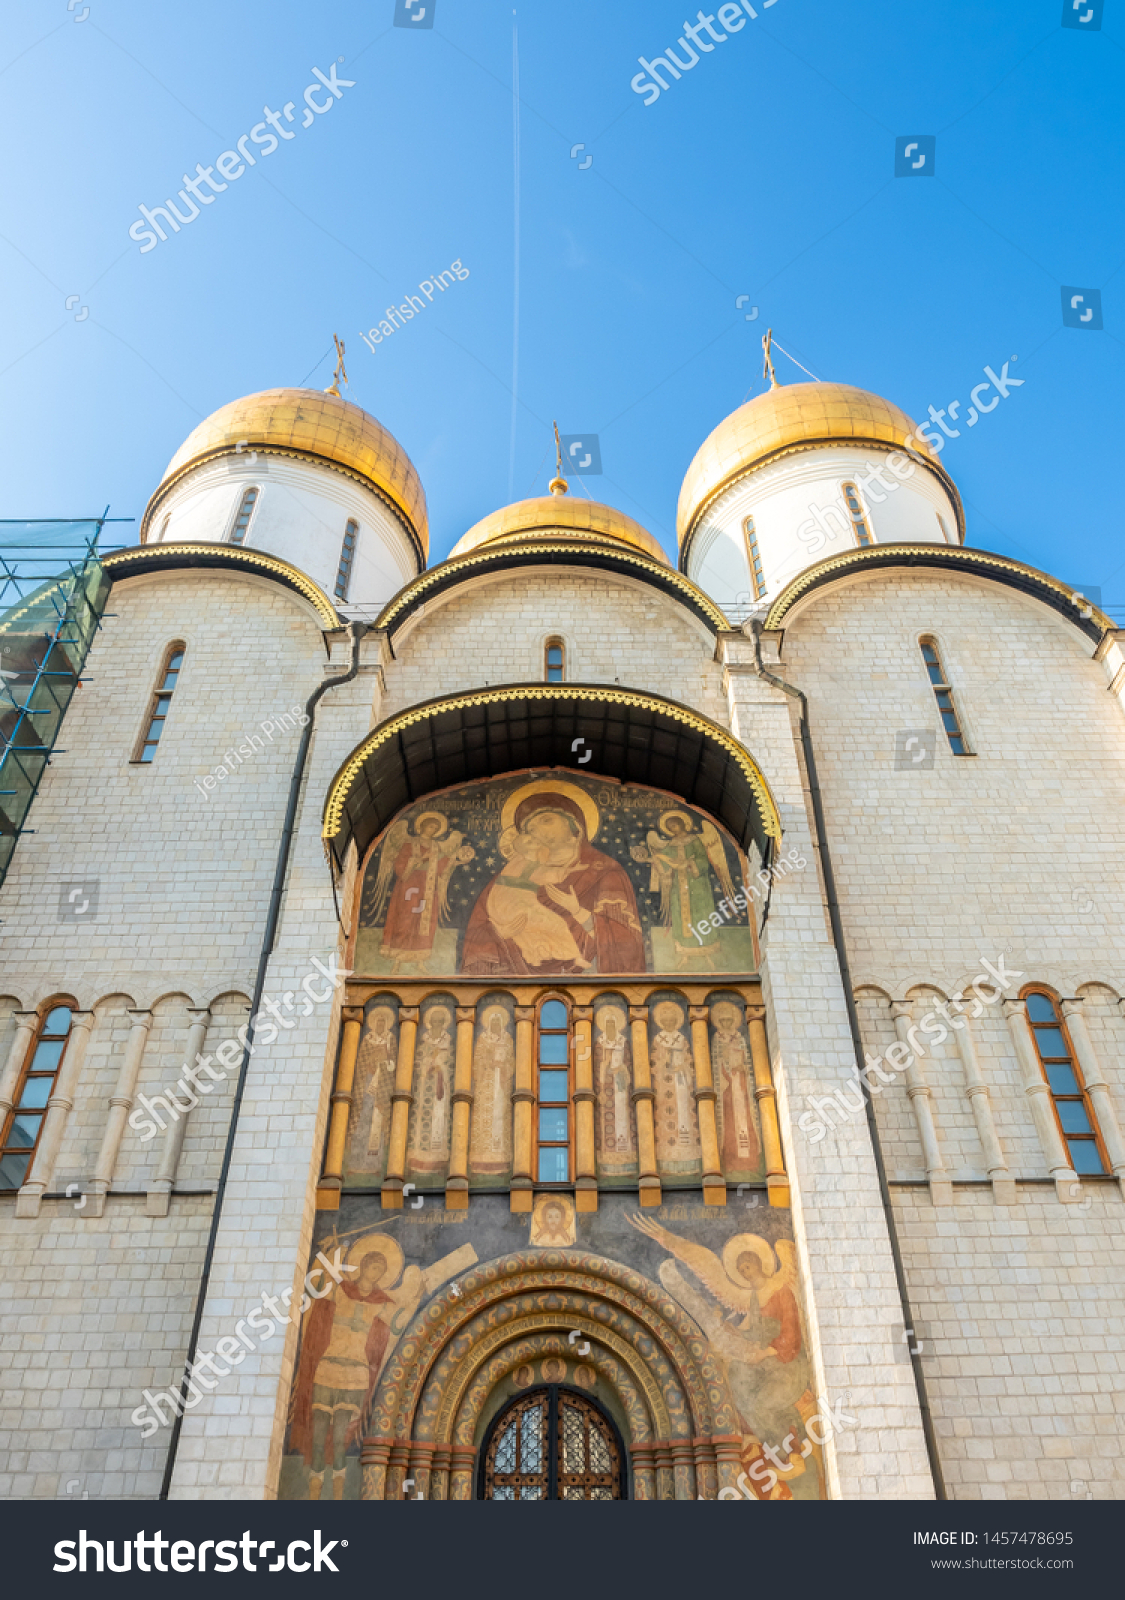 Dormition cathedral, or Cathedral of Assumption, in Cathedral square in Moscow Kremlin, summer season, in Moscow, Russia #1457478695